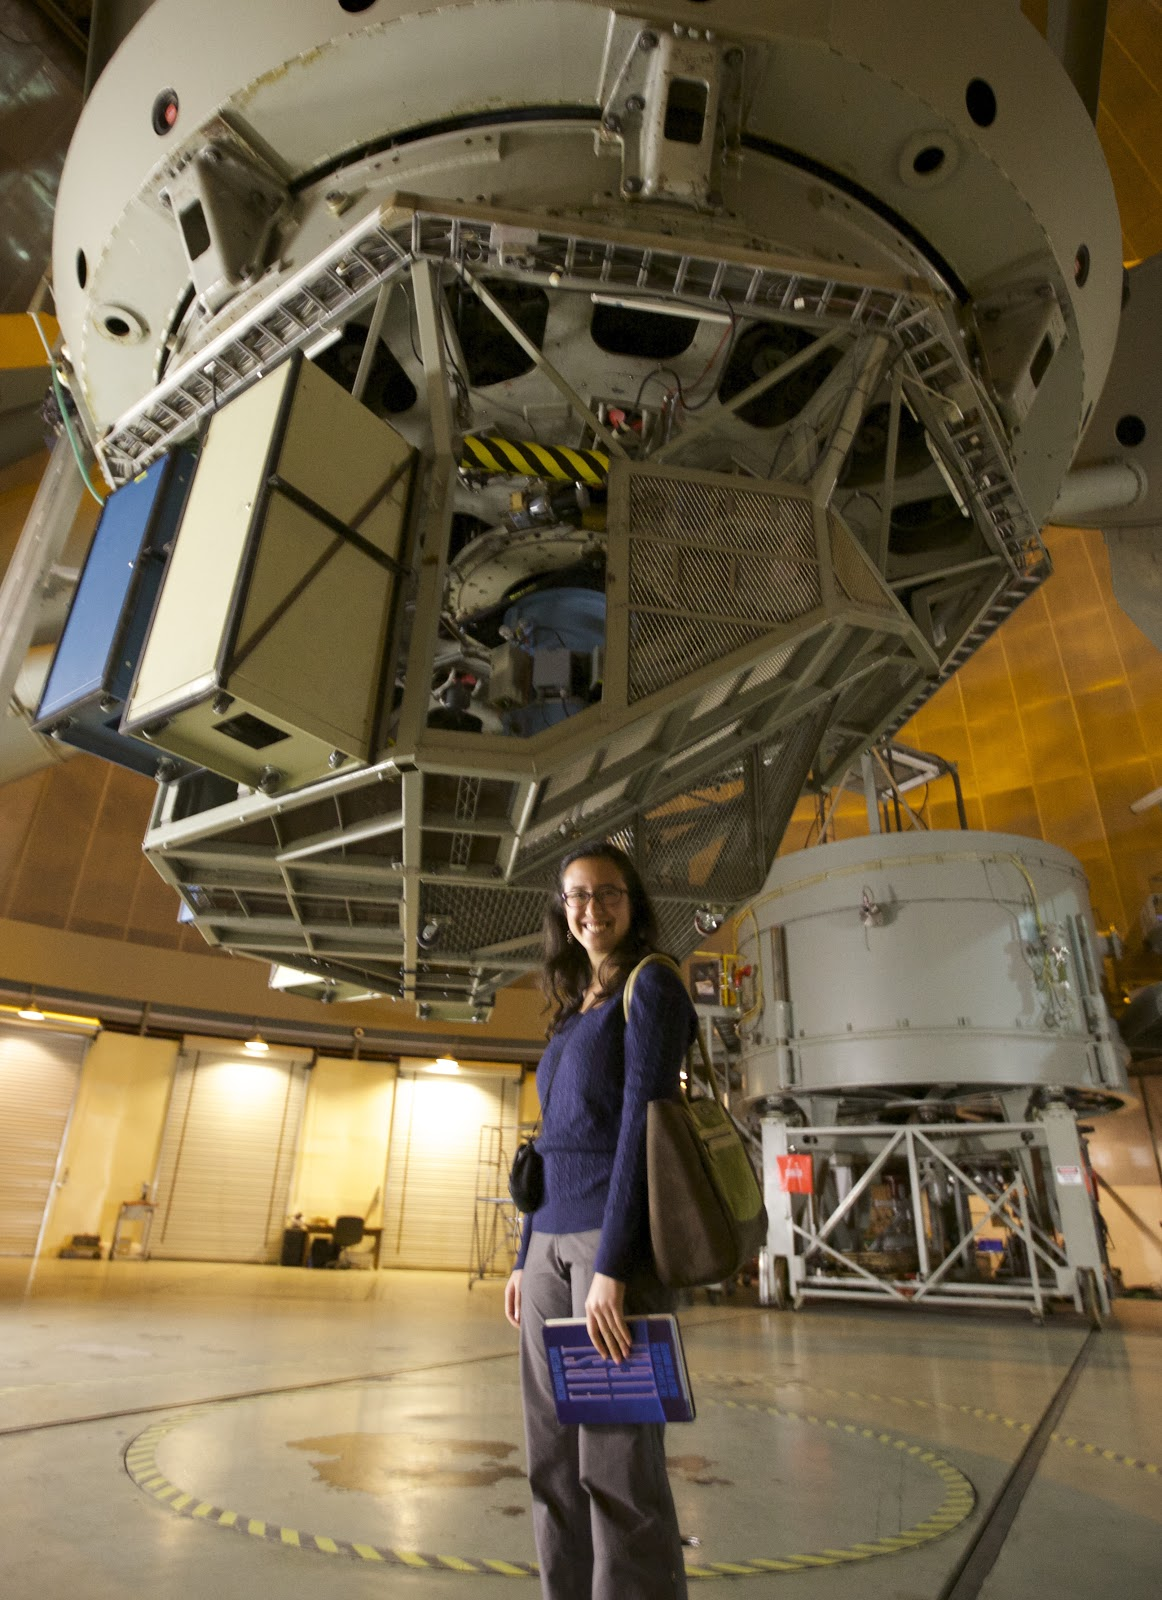 Anna with the 200-inch Hale Telescope at Palomar Observatory!